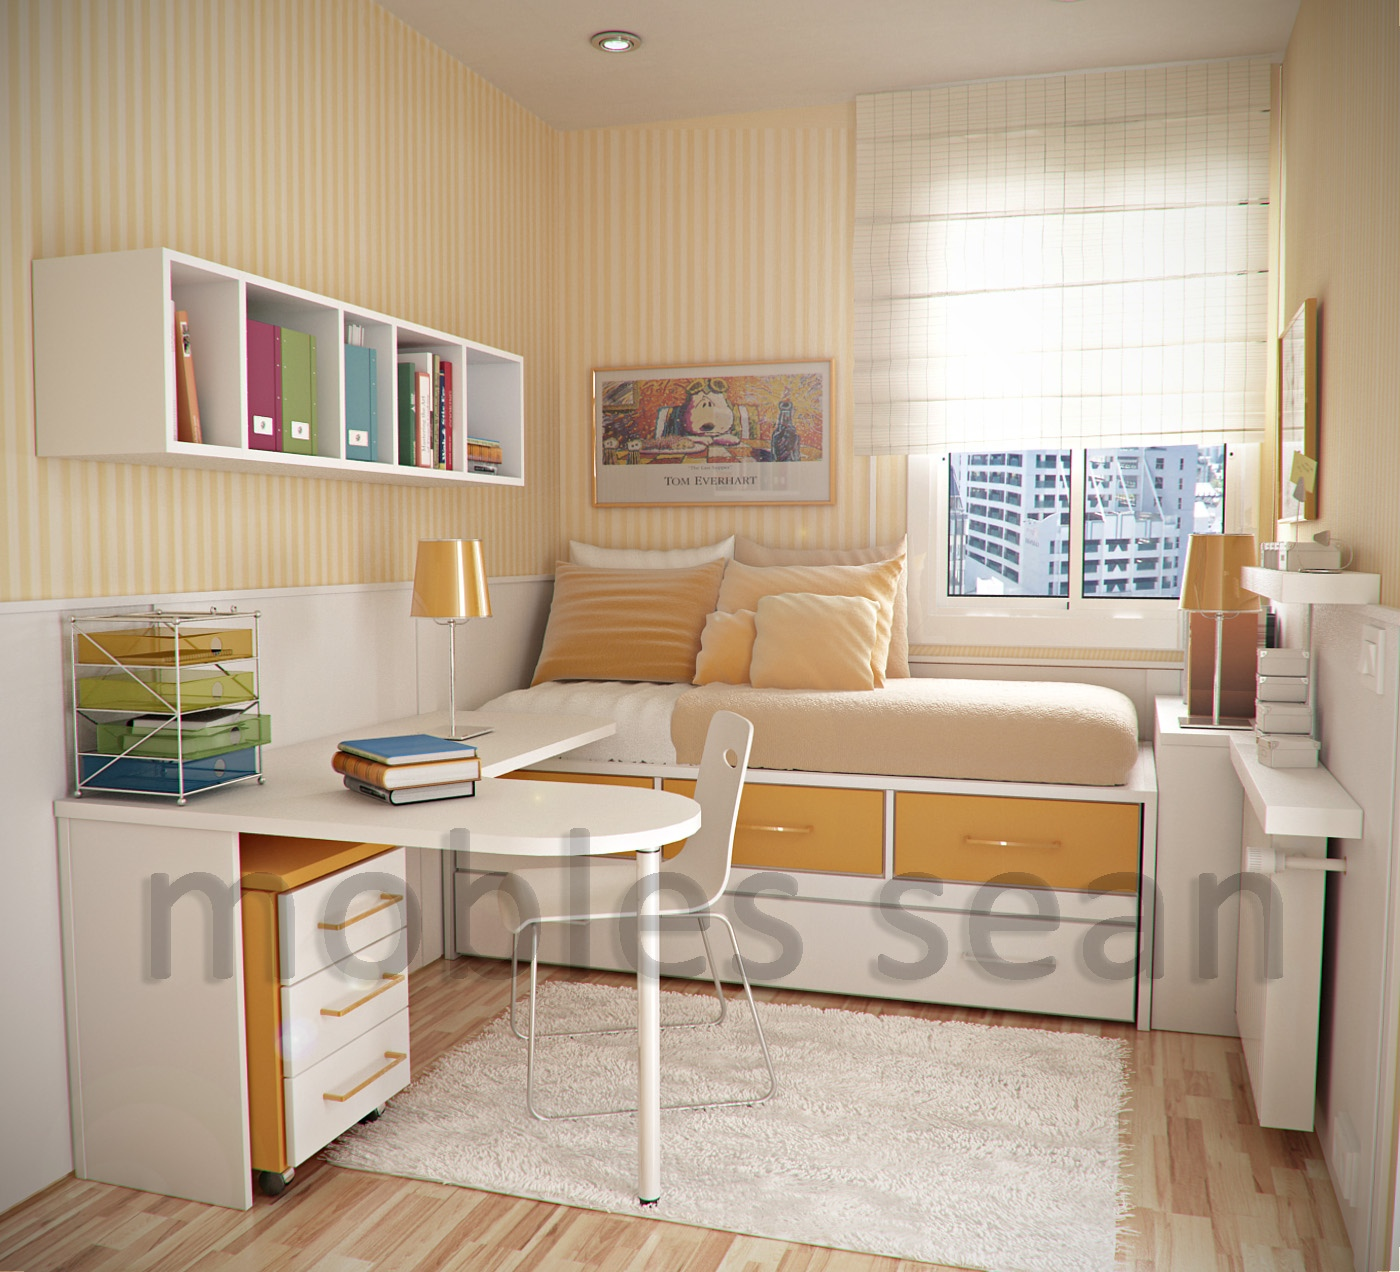 Https Www Home Designing Com 2012 02 Space Saving Designs For Small Kids Rooms